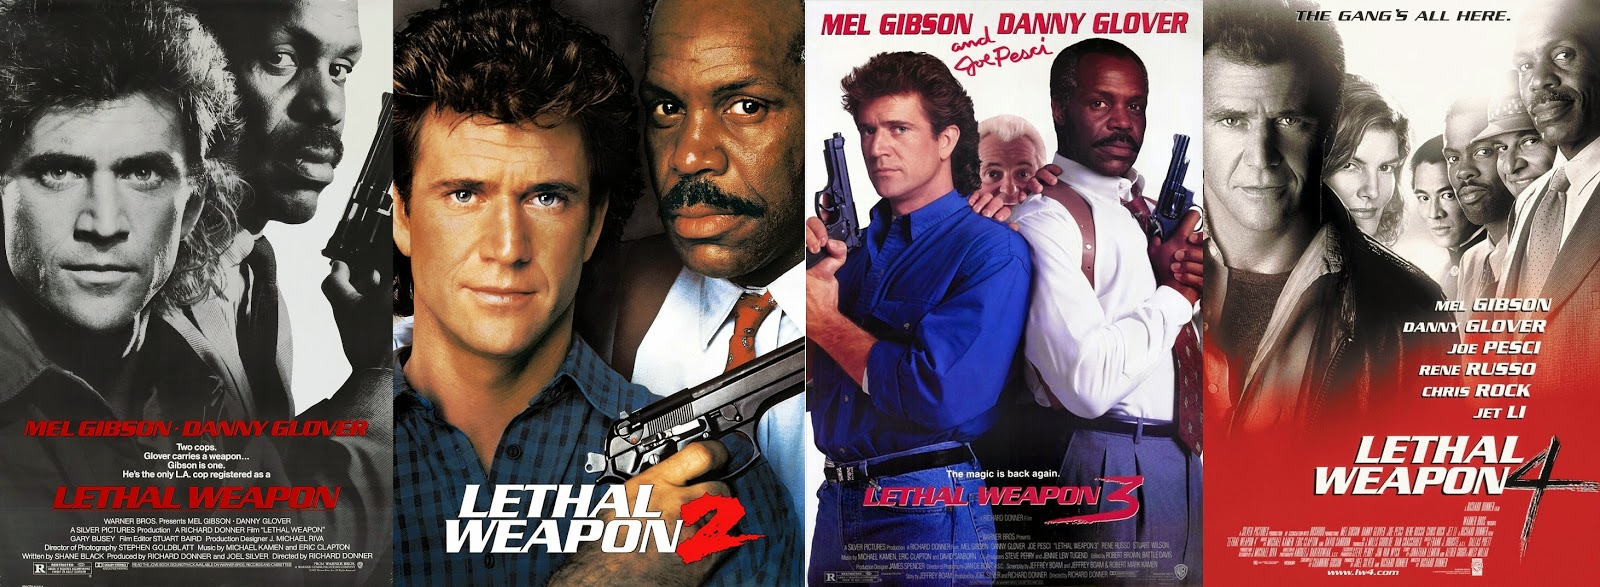 Worth To Watch Lethal Weapon Quadrilogy 1987 1989 1992 And 1998